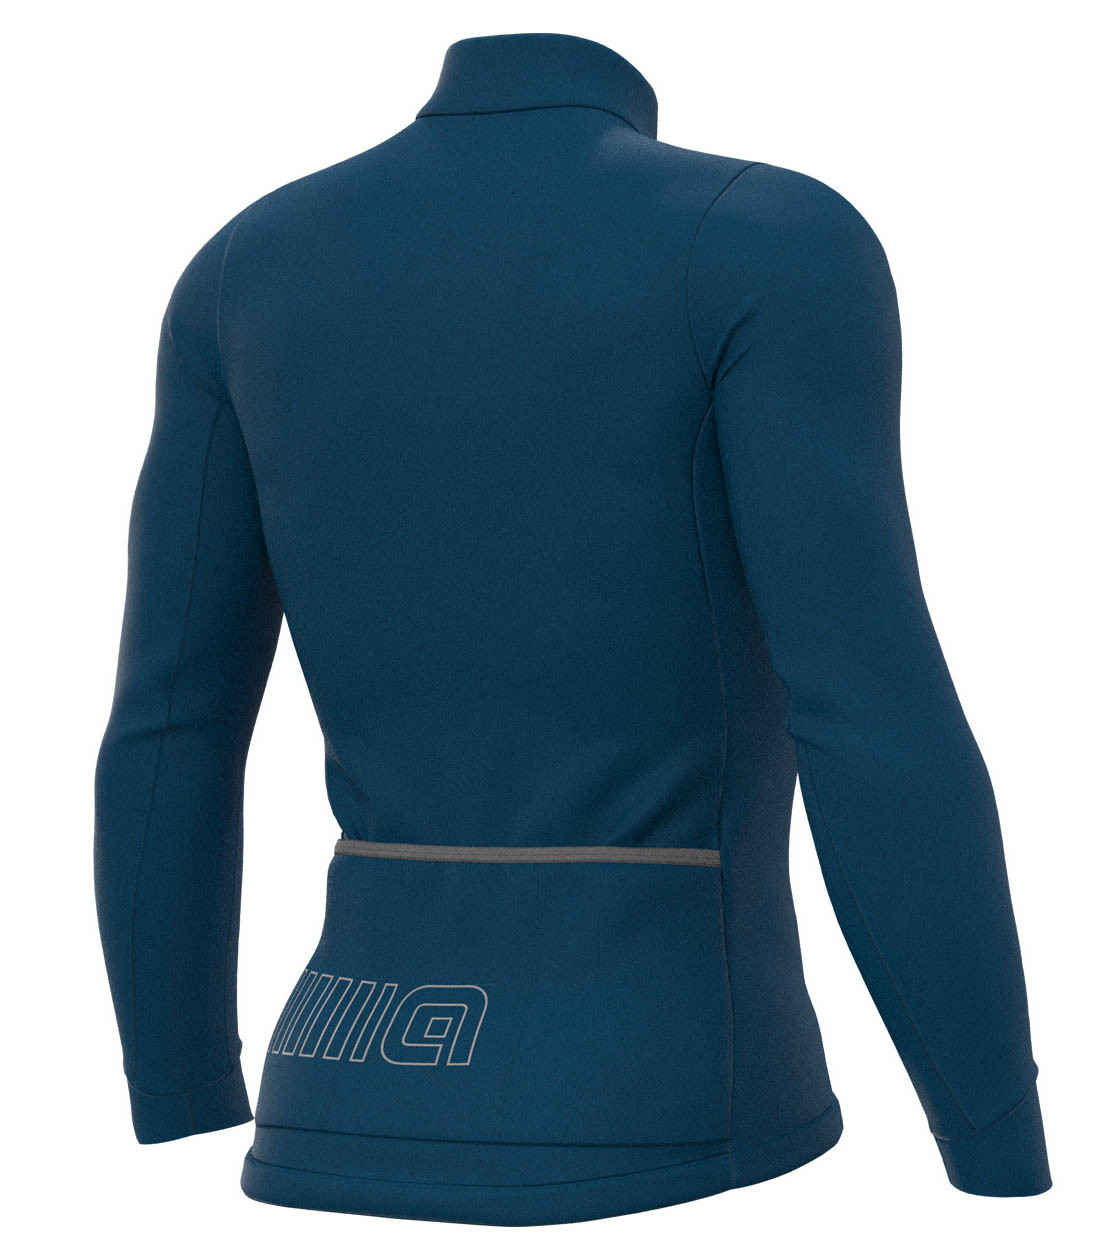 ALE' Color Block Solid Blue Long Sleeve Jersey Rear